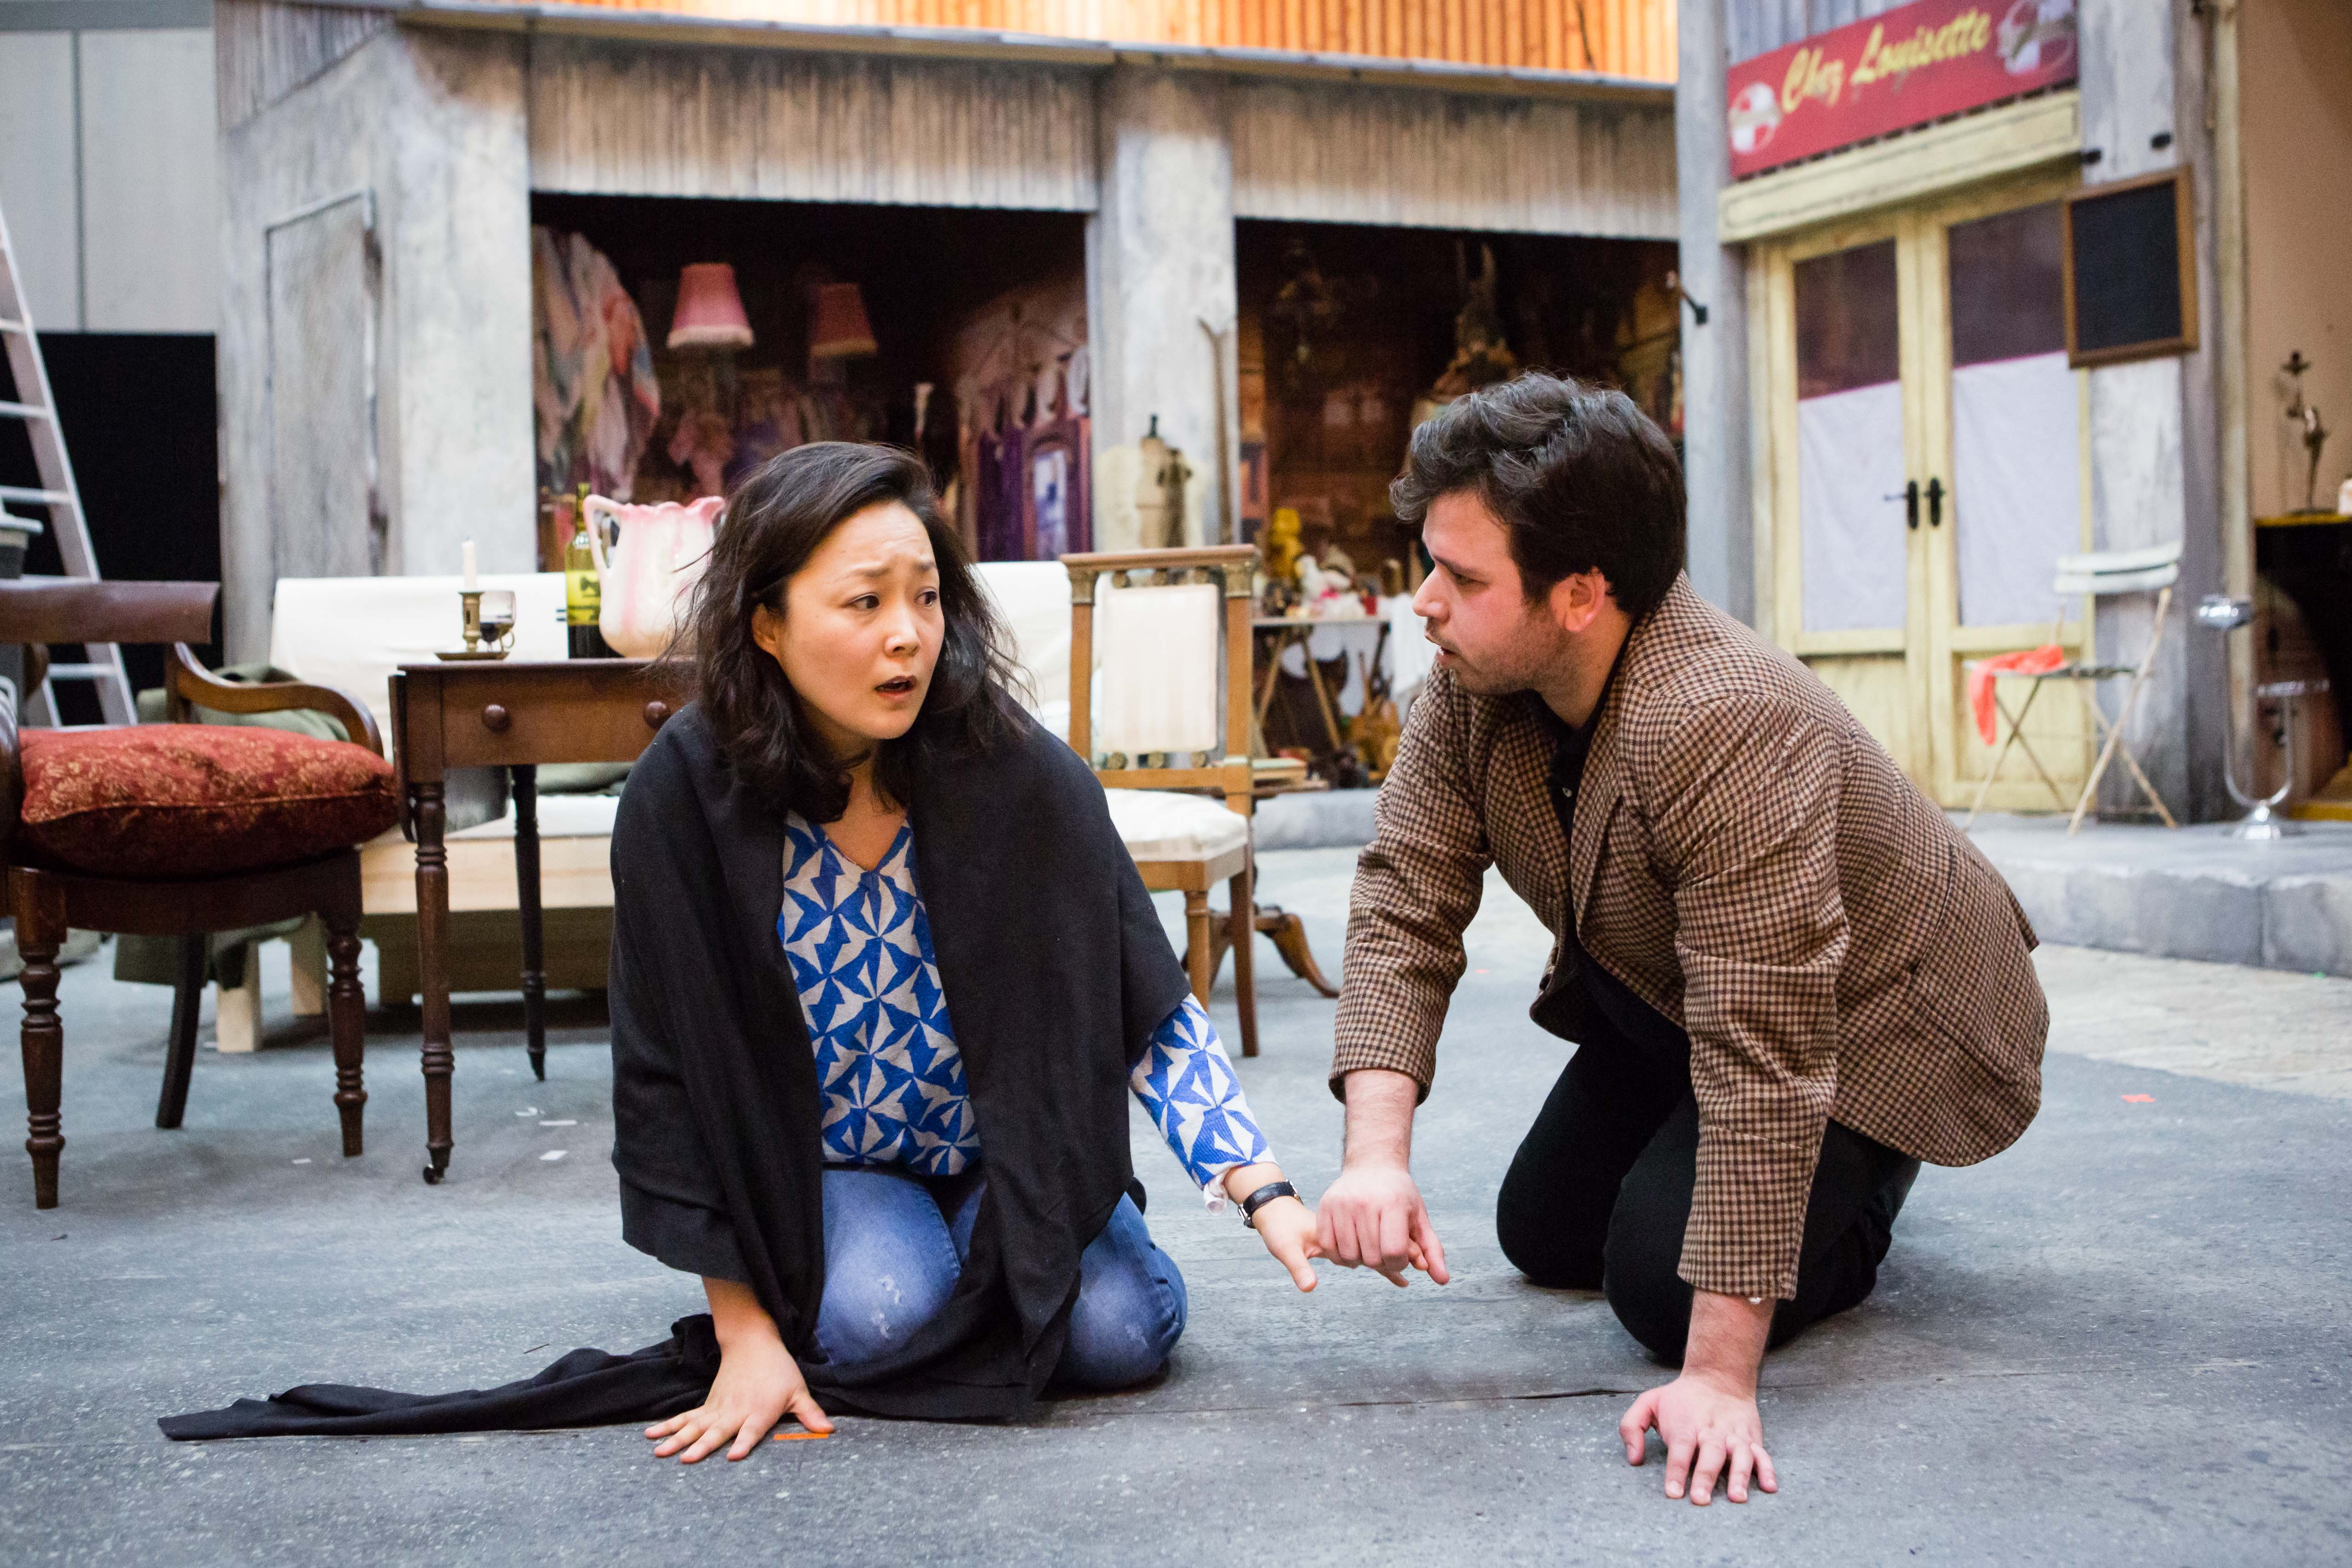 Hye-Youn Lee (Mimi) and Luis Gomes (Rodolfo) in rehearsals